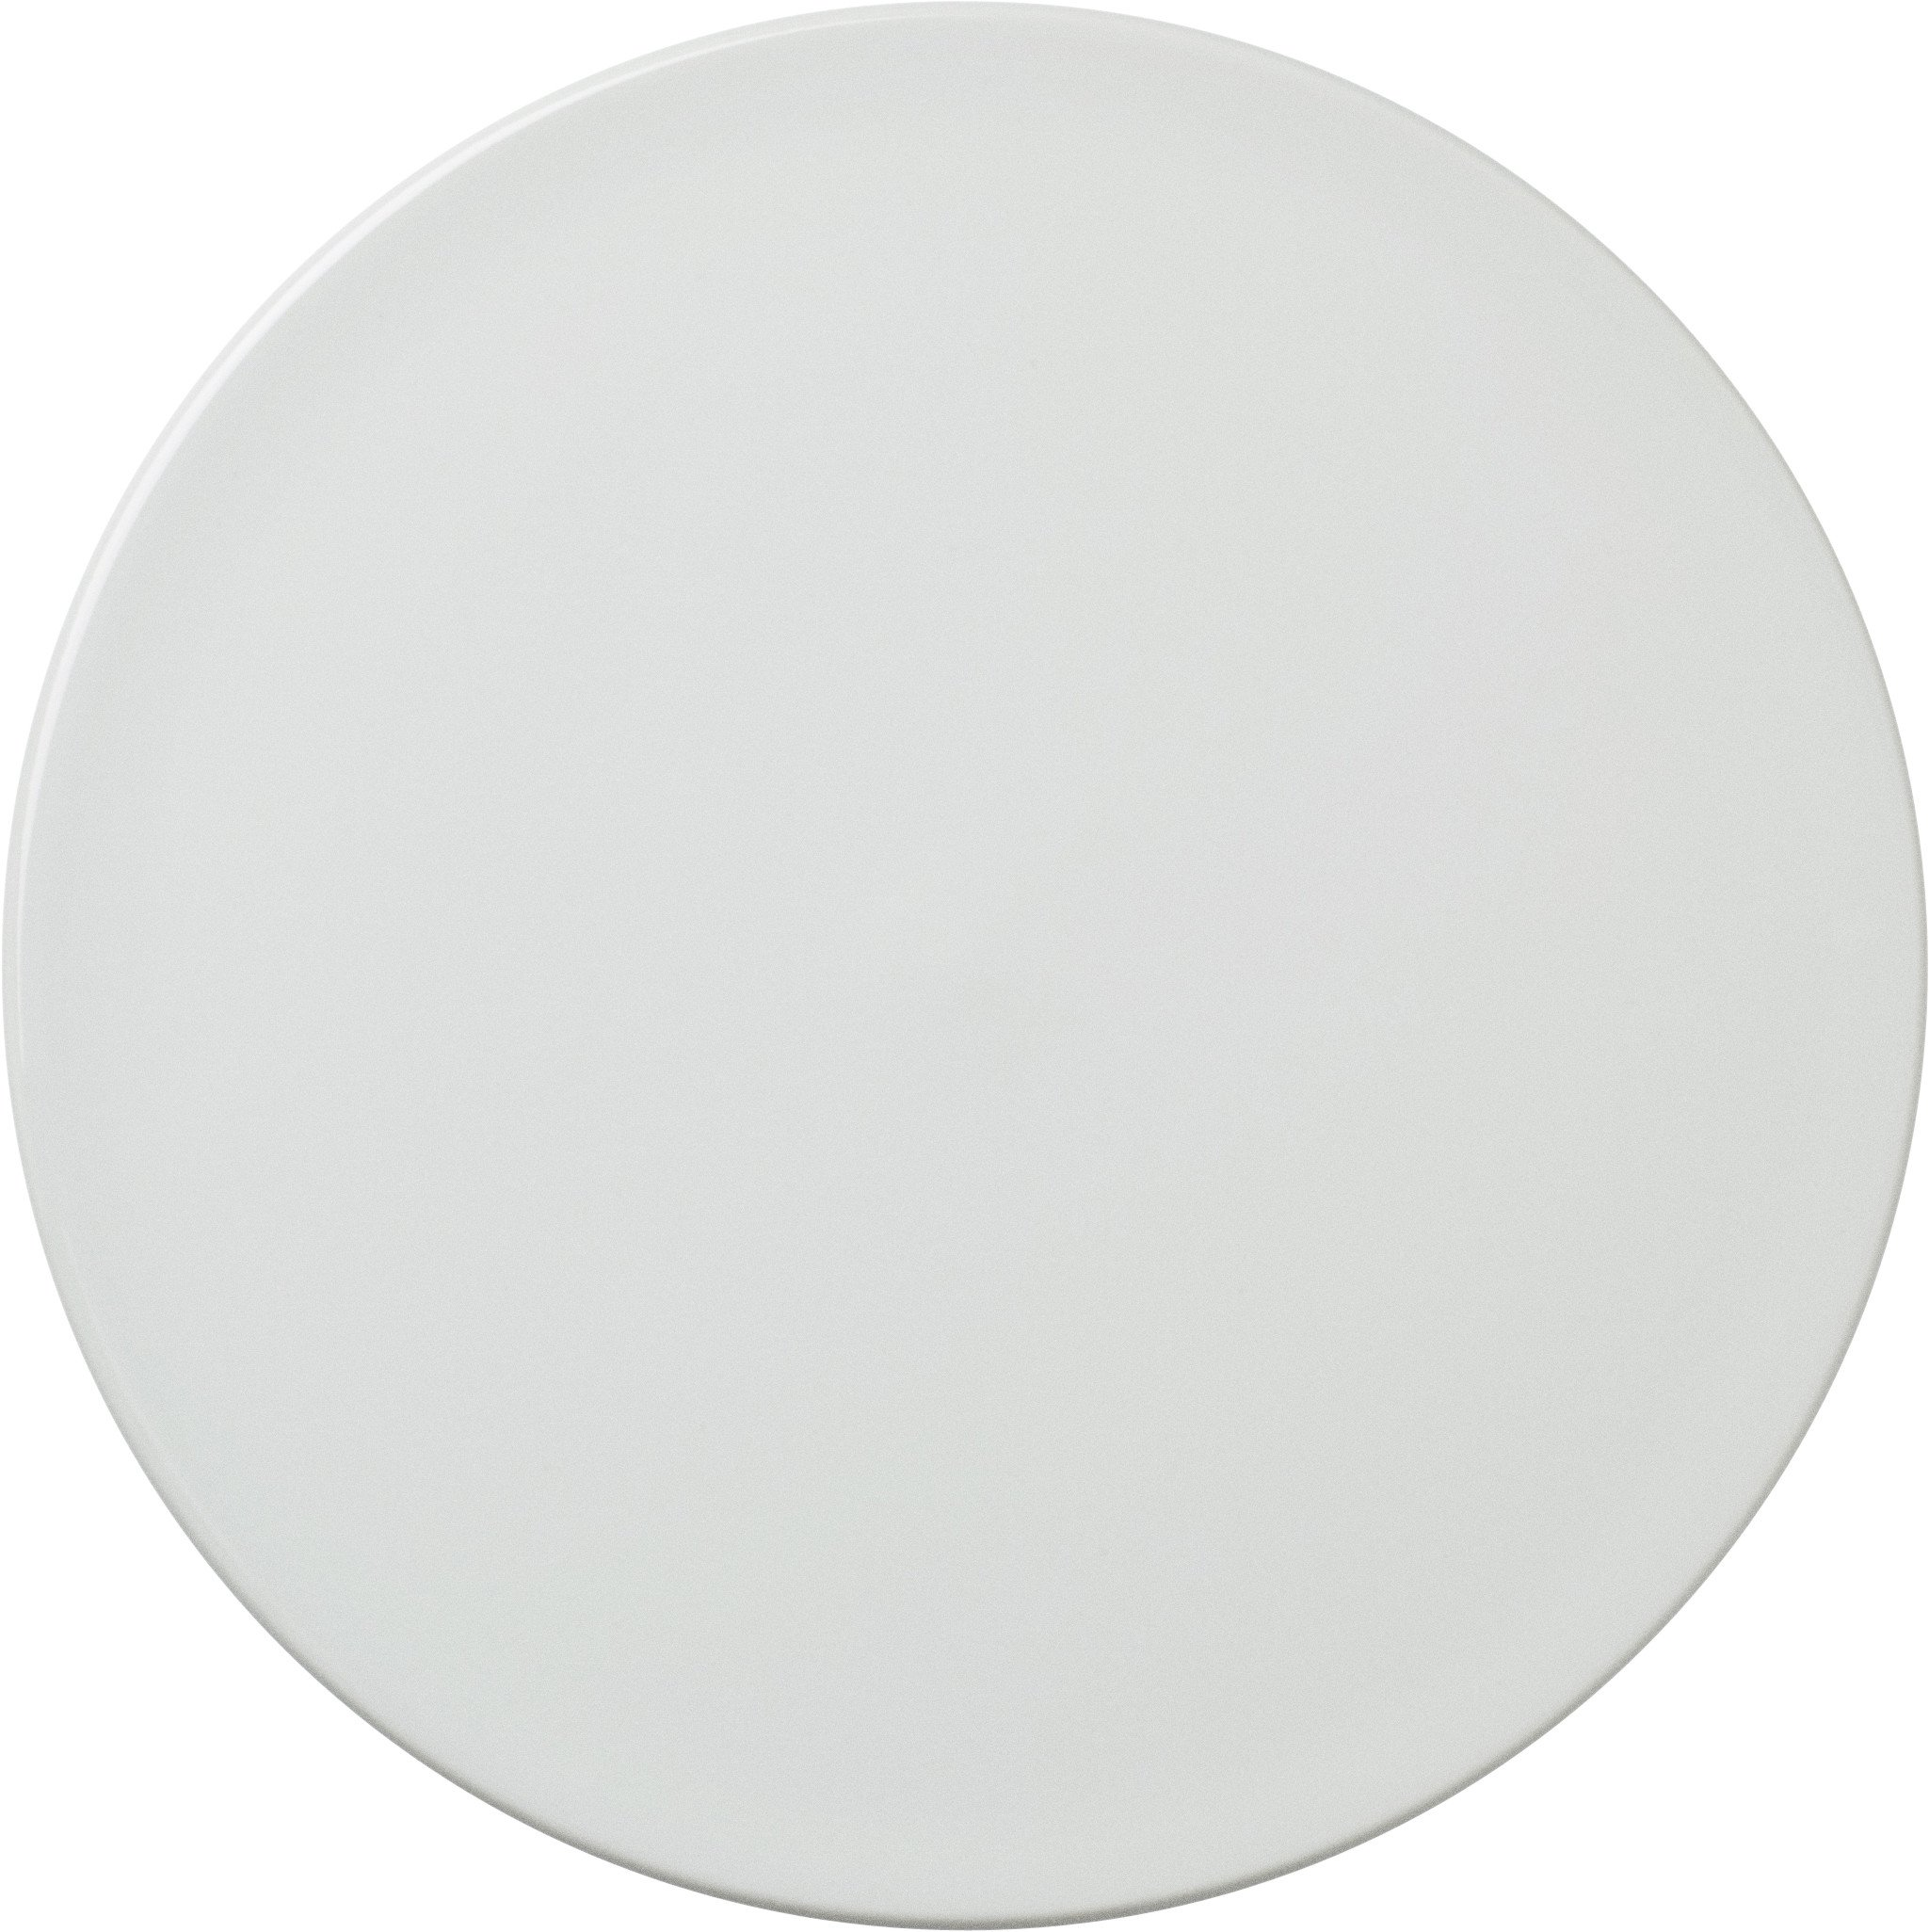 New Norm Plate/Lid White Ø 13,5cm by Norm Architects for Menu